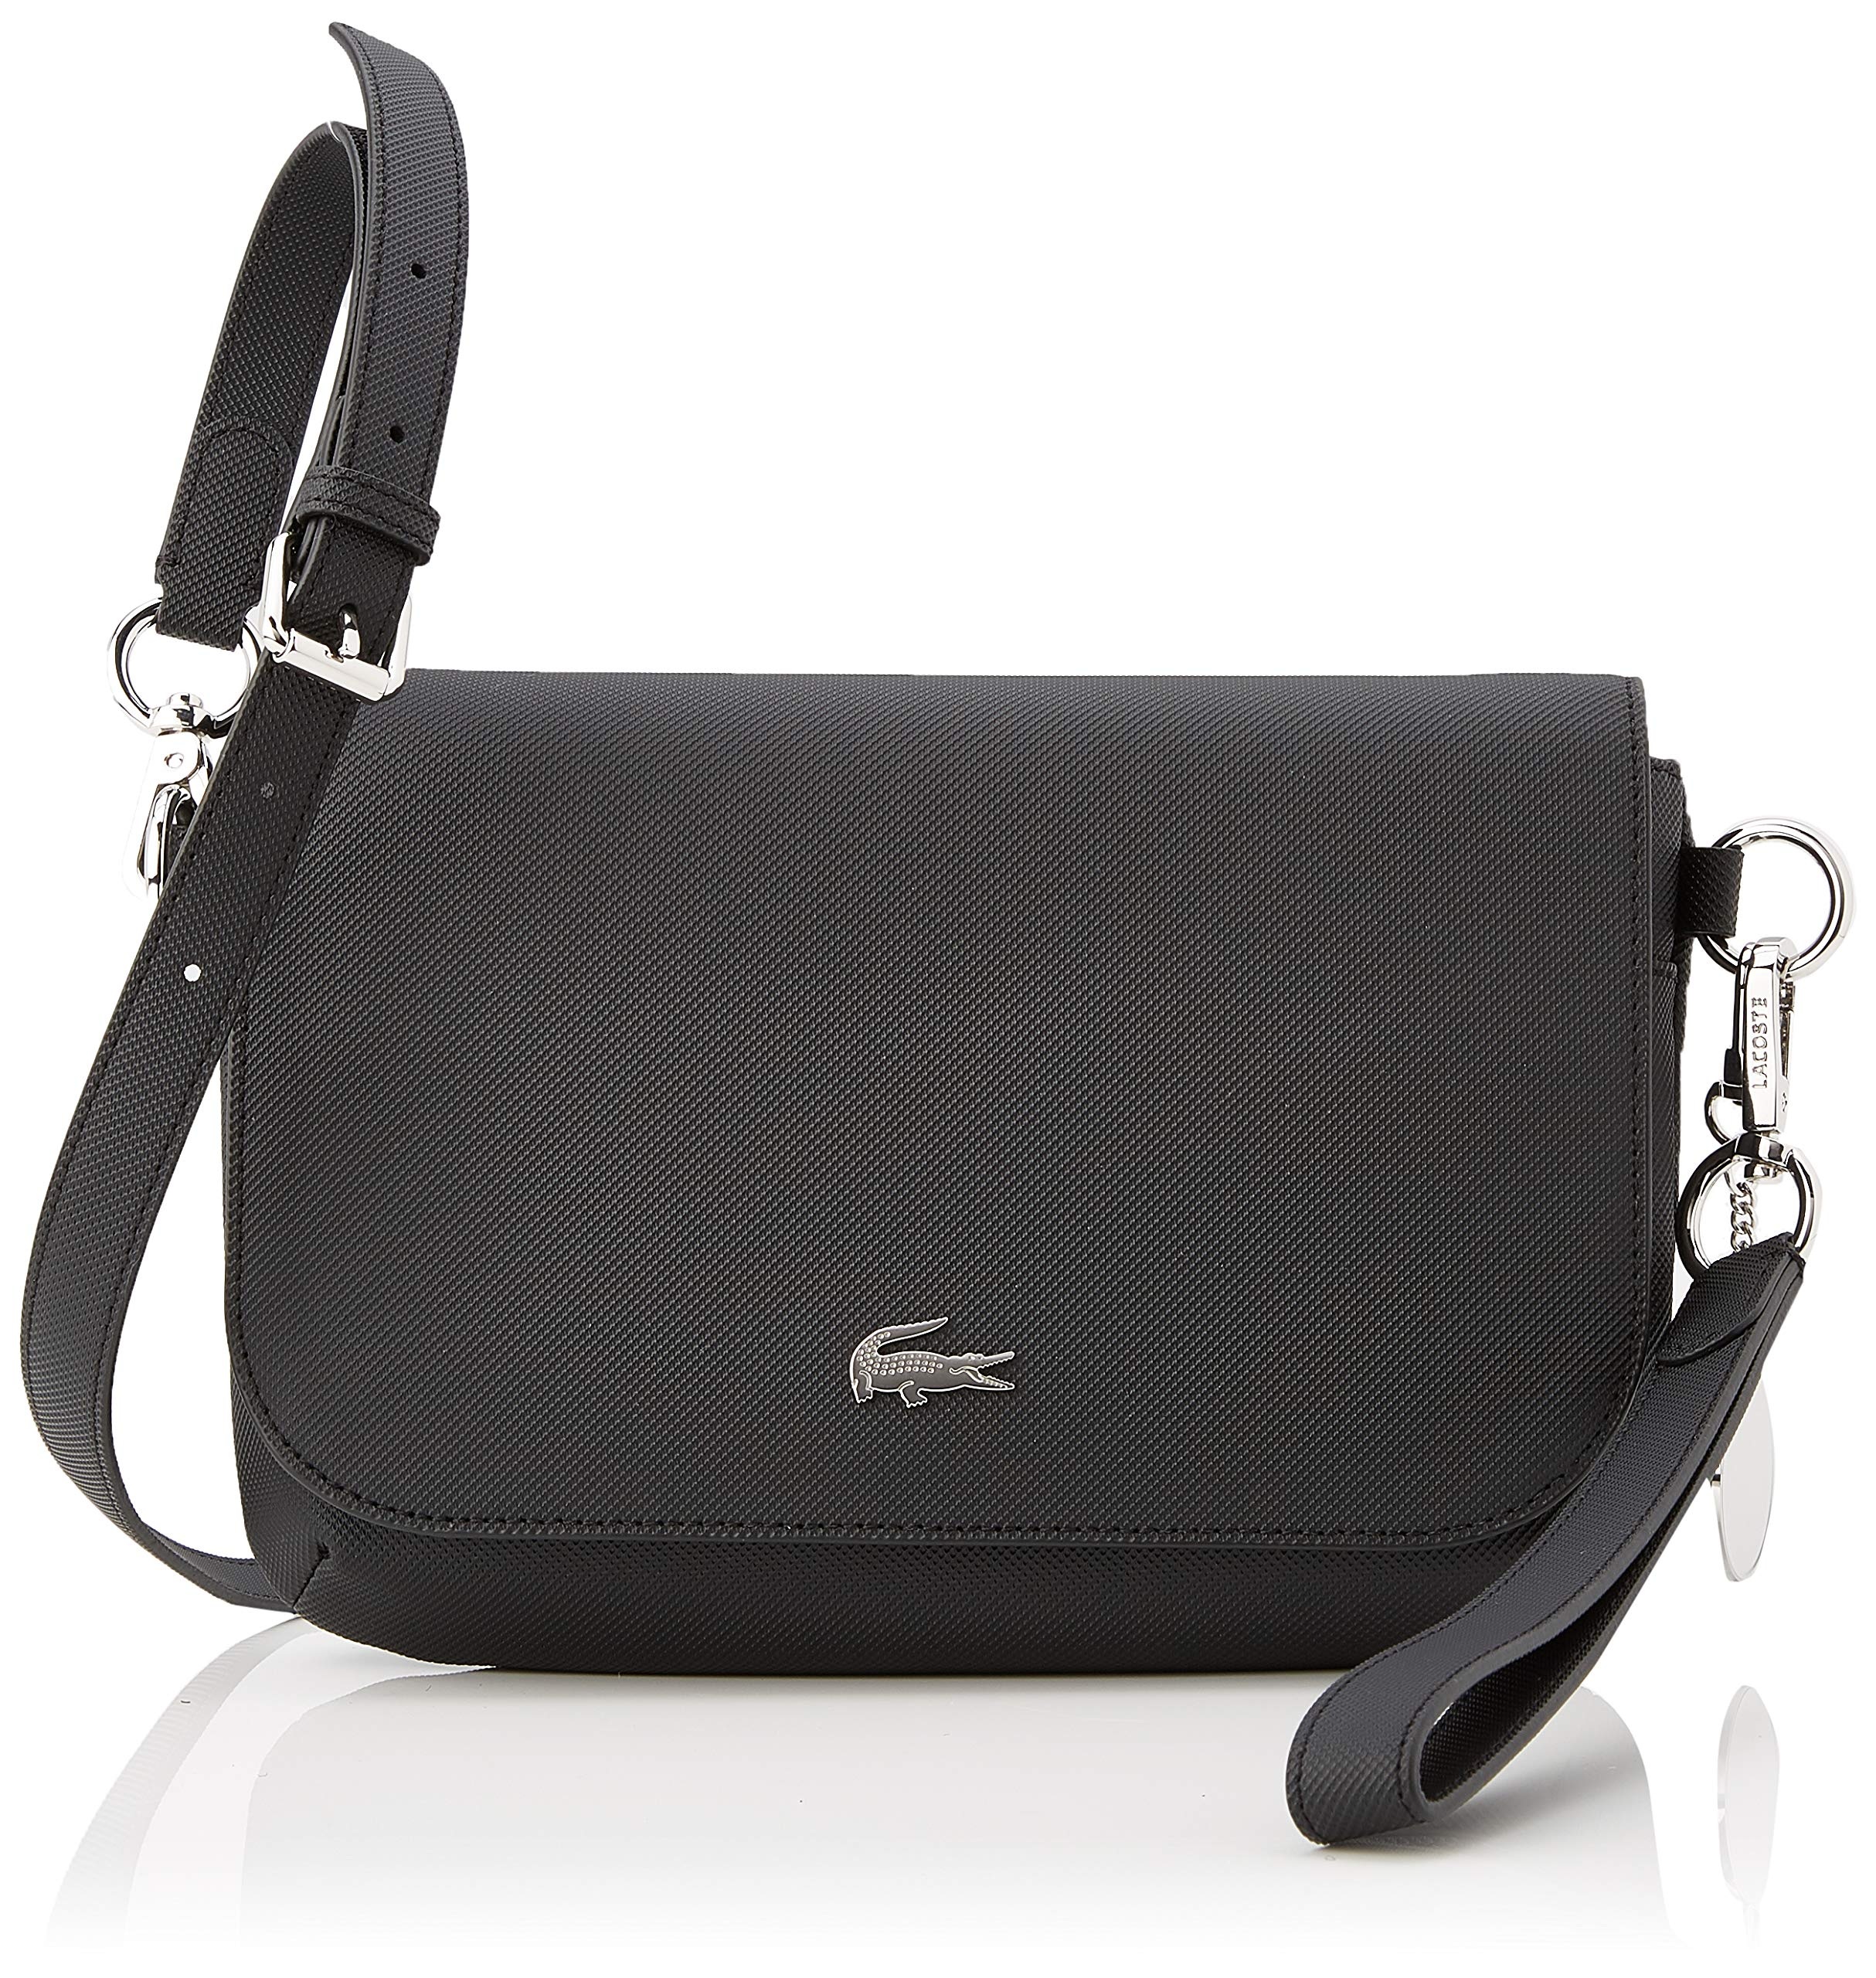 Lacoste Femme Daily Sac Noirblack Classic Bandouliere pjLqMGUzSV